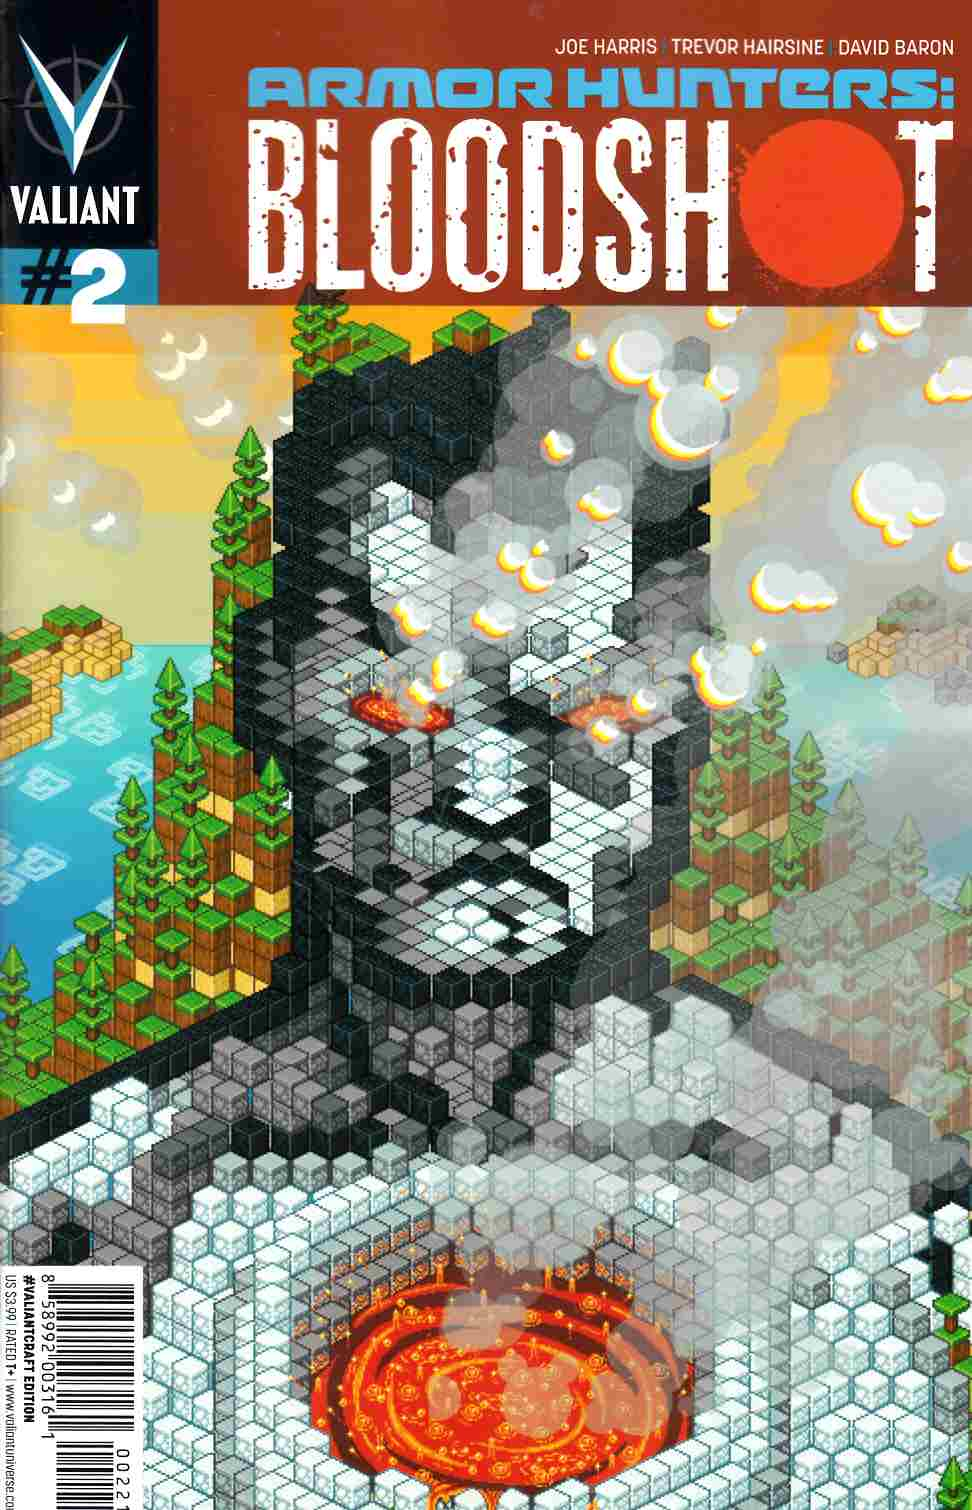 Armor Hunters Bloodshot #2 Valiantcraft Cover [Comic] THUMBNAIL